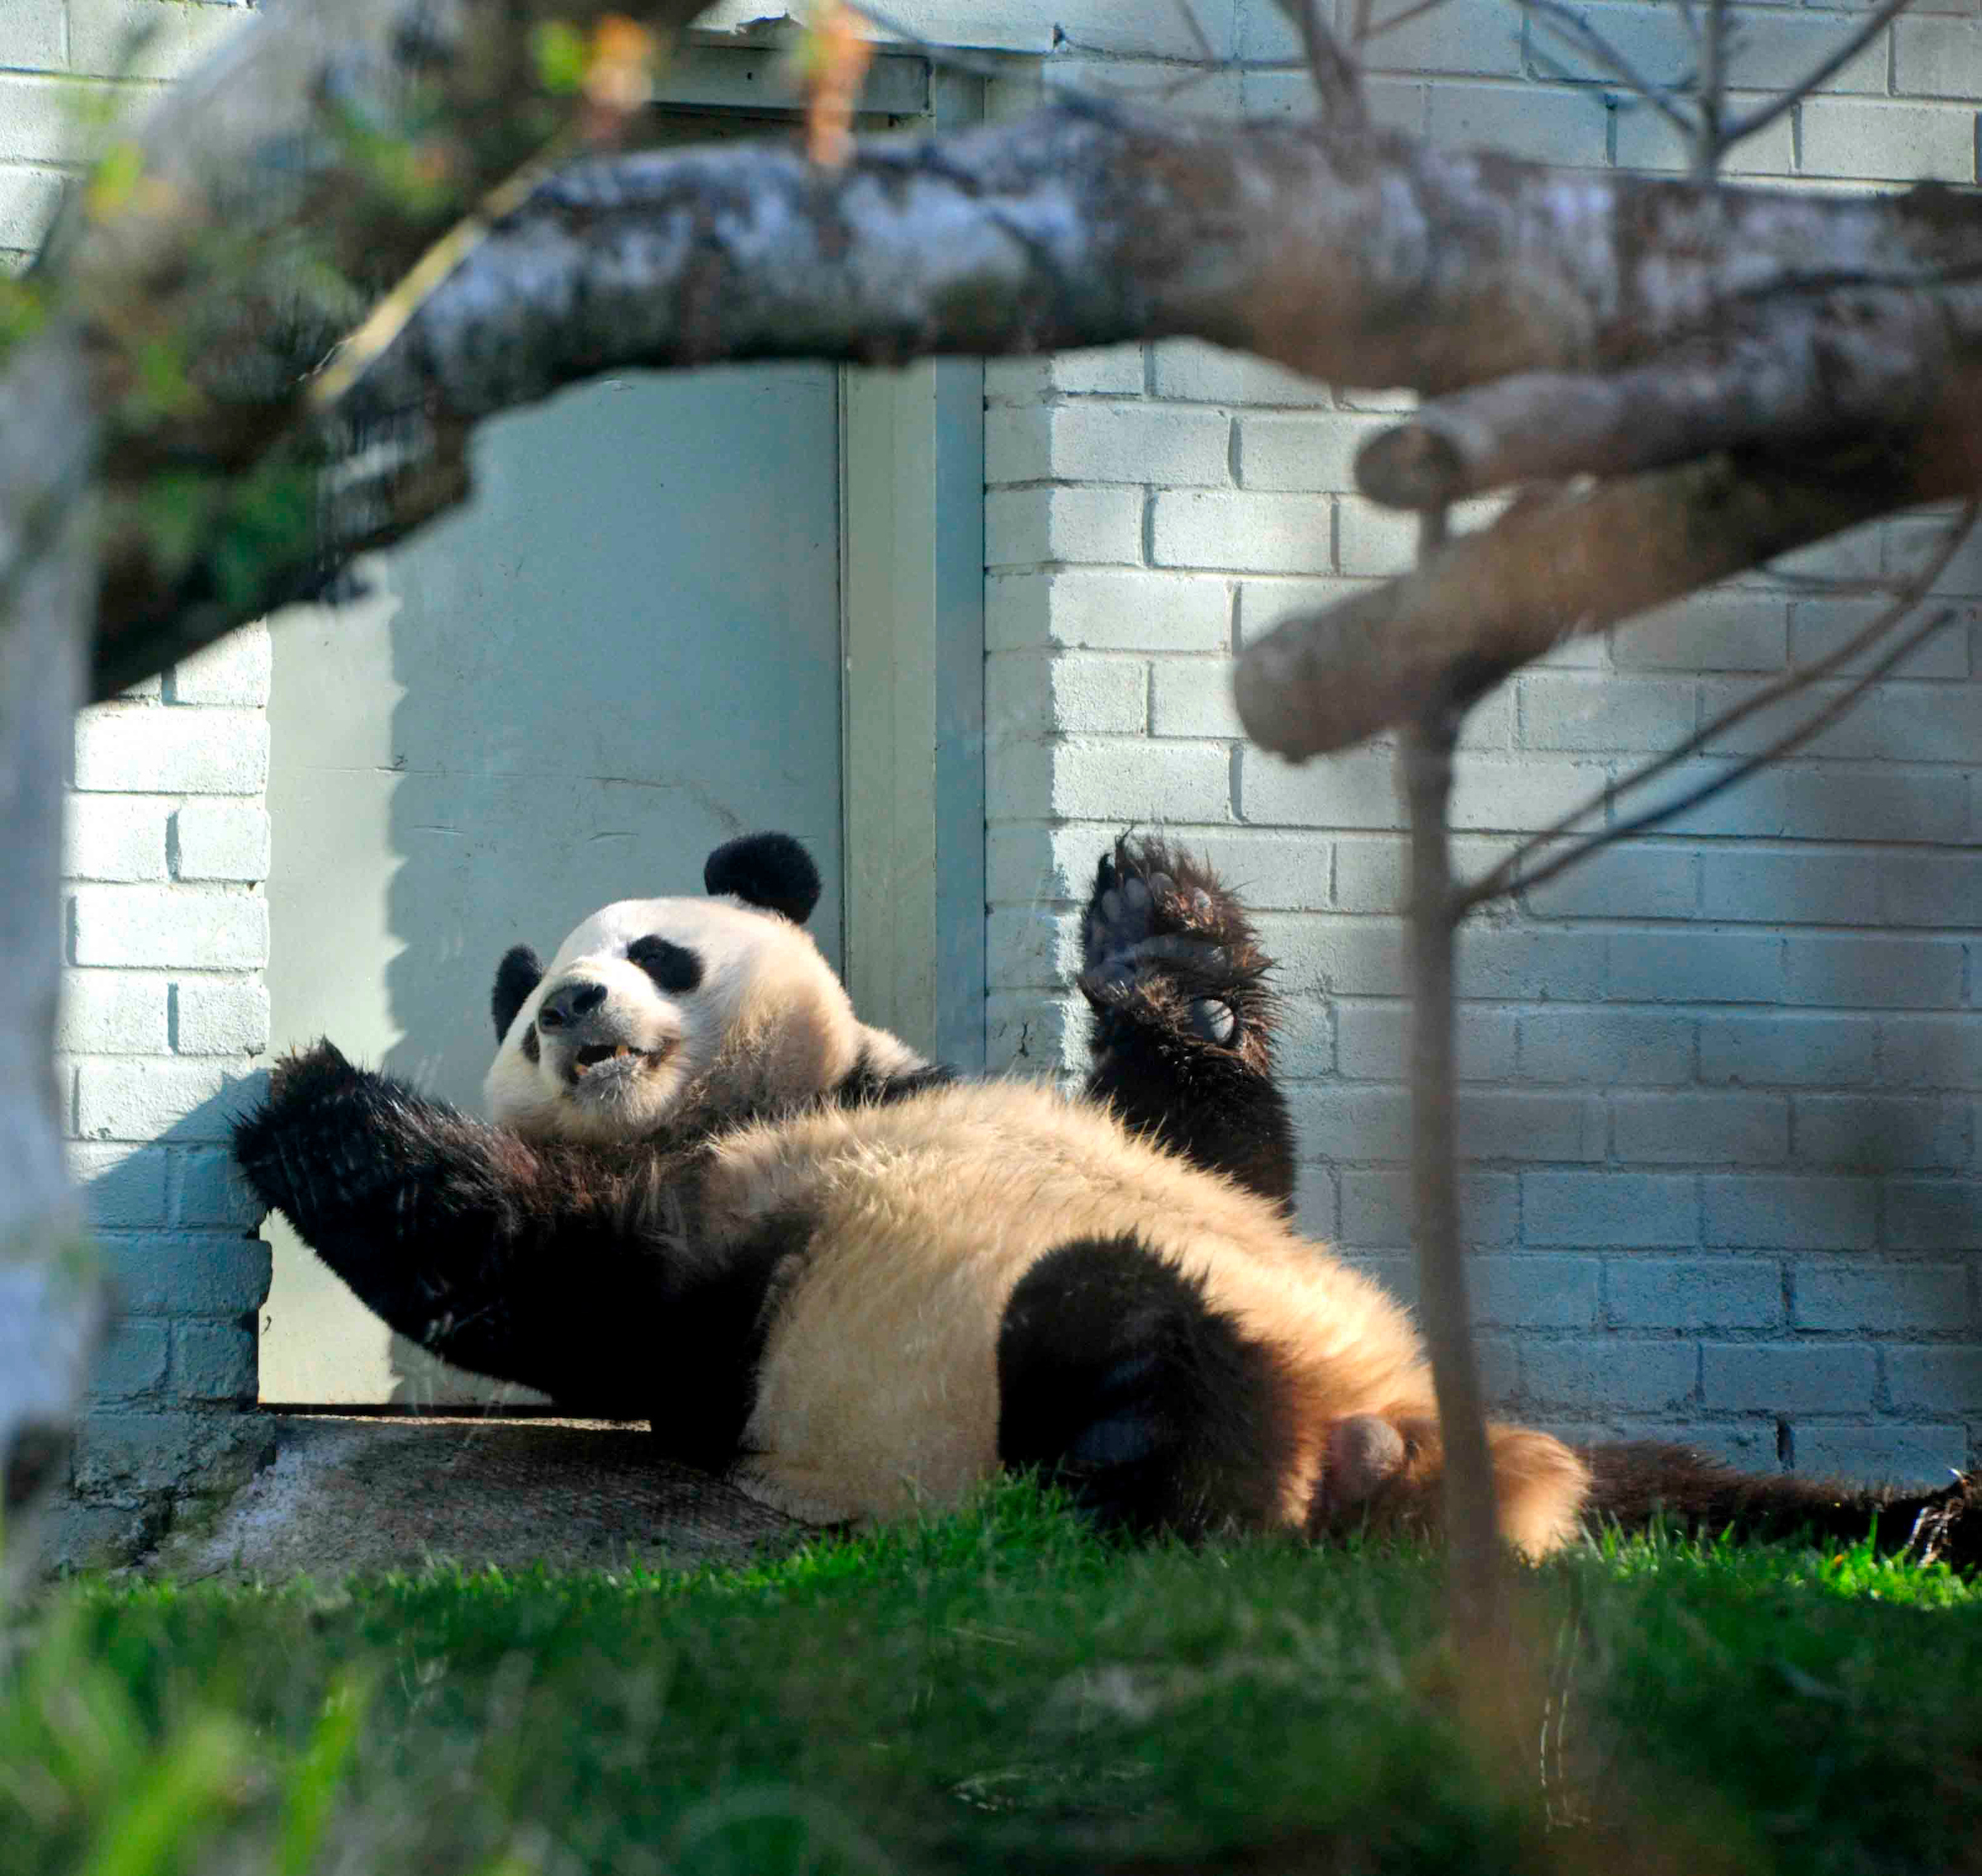 Giant Panda in Edinburgh Zoo possibly expecting a baby